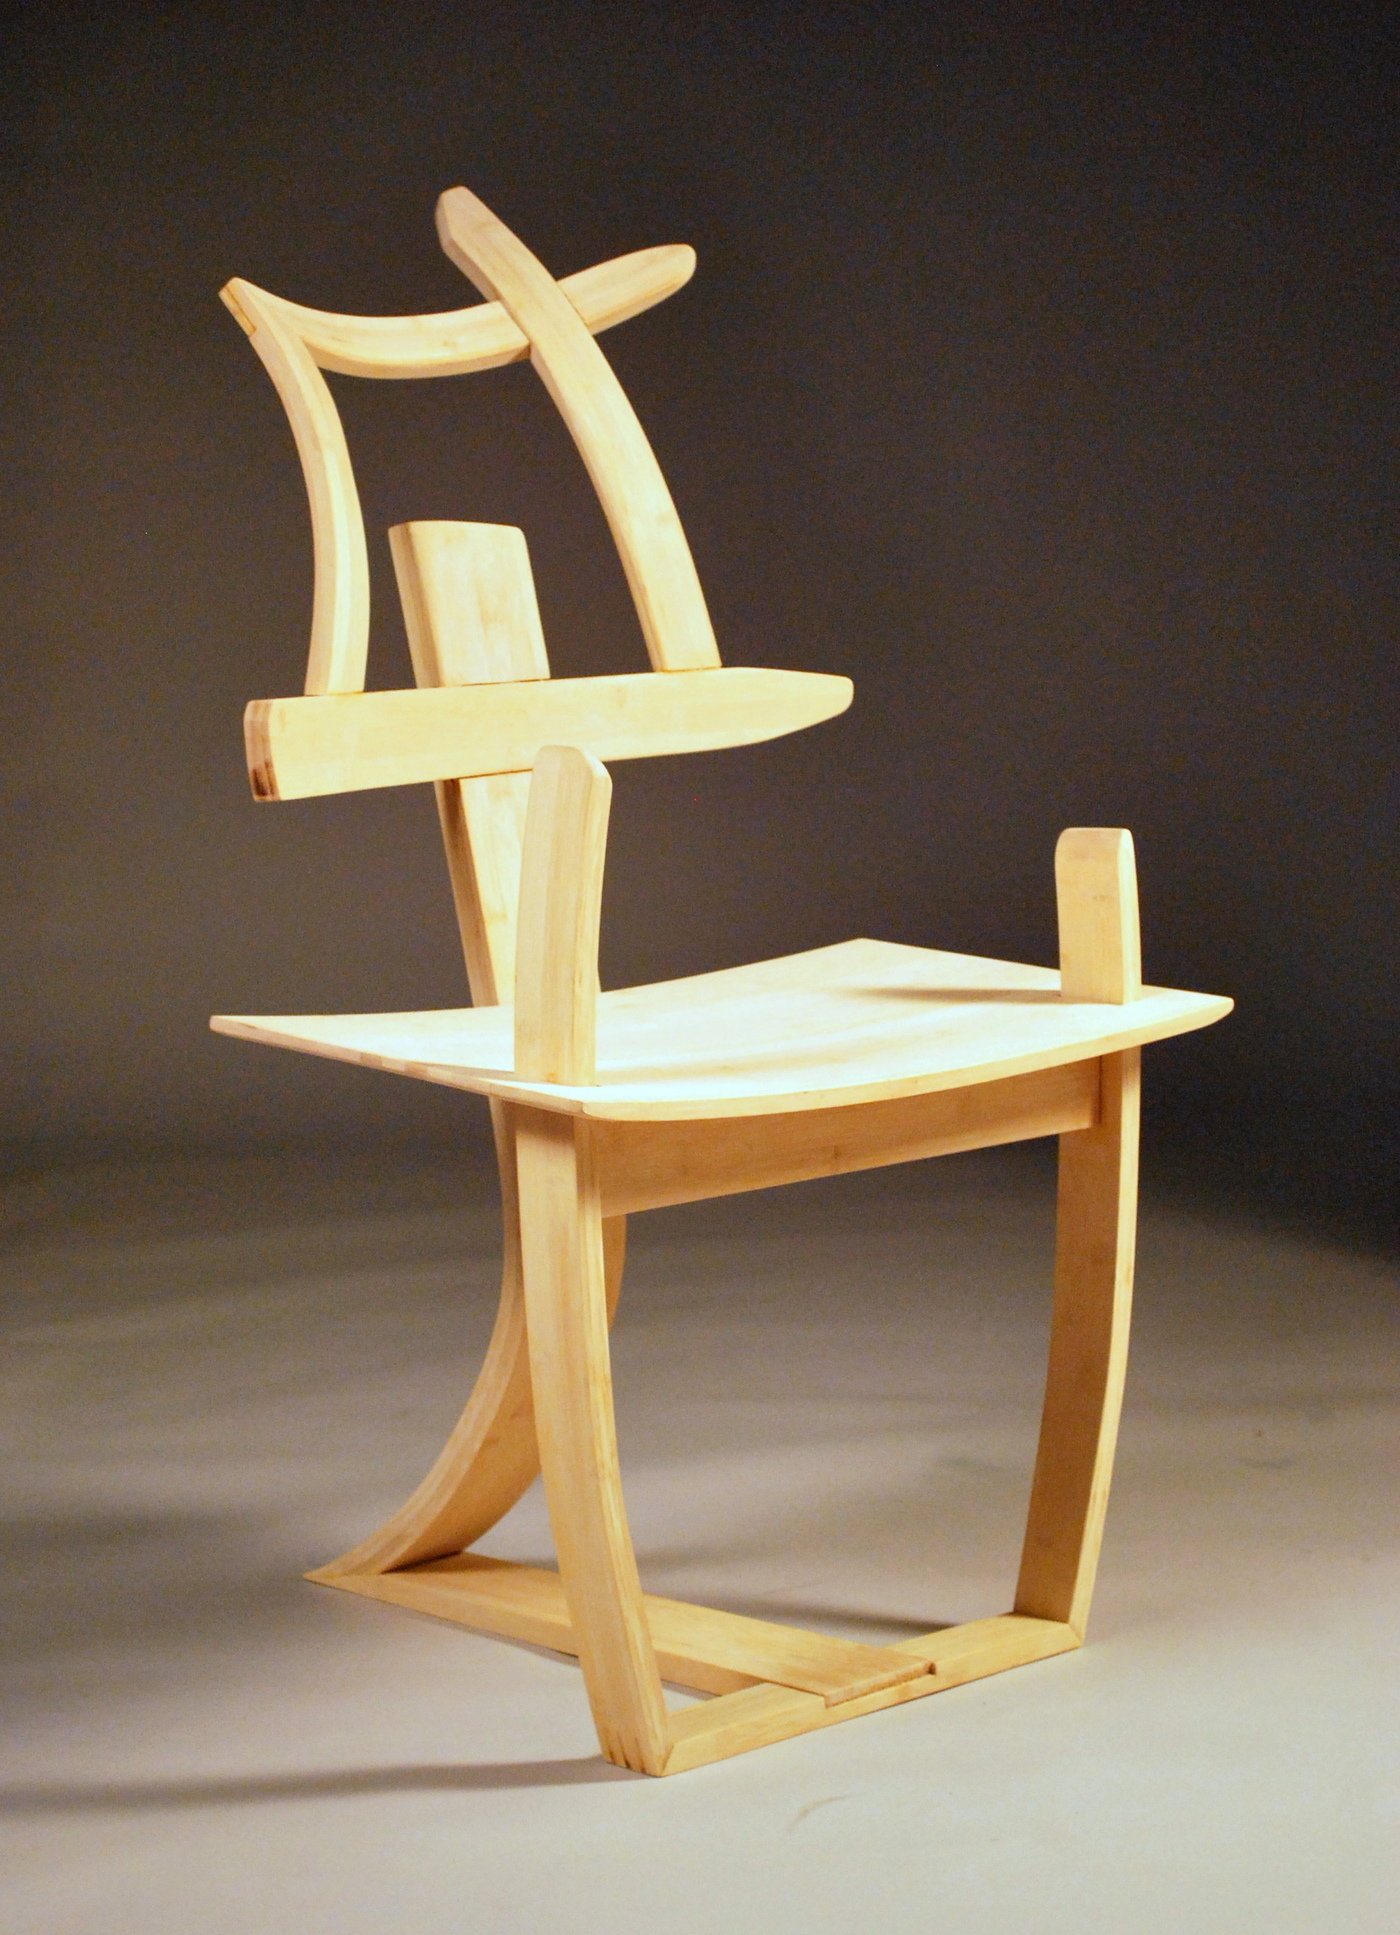 Furniture By Emily Ma At Coroflot Com